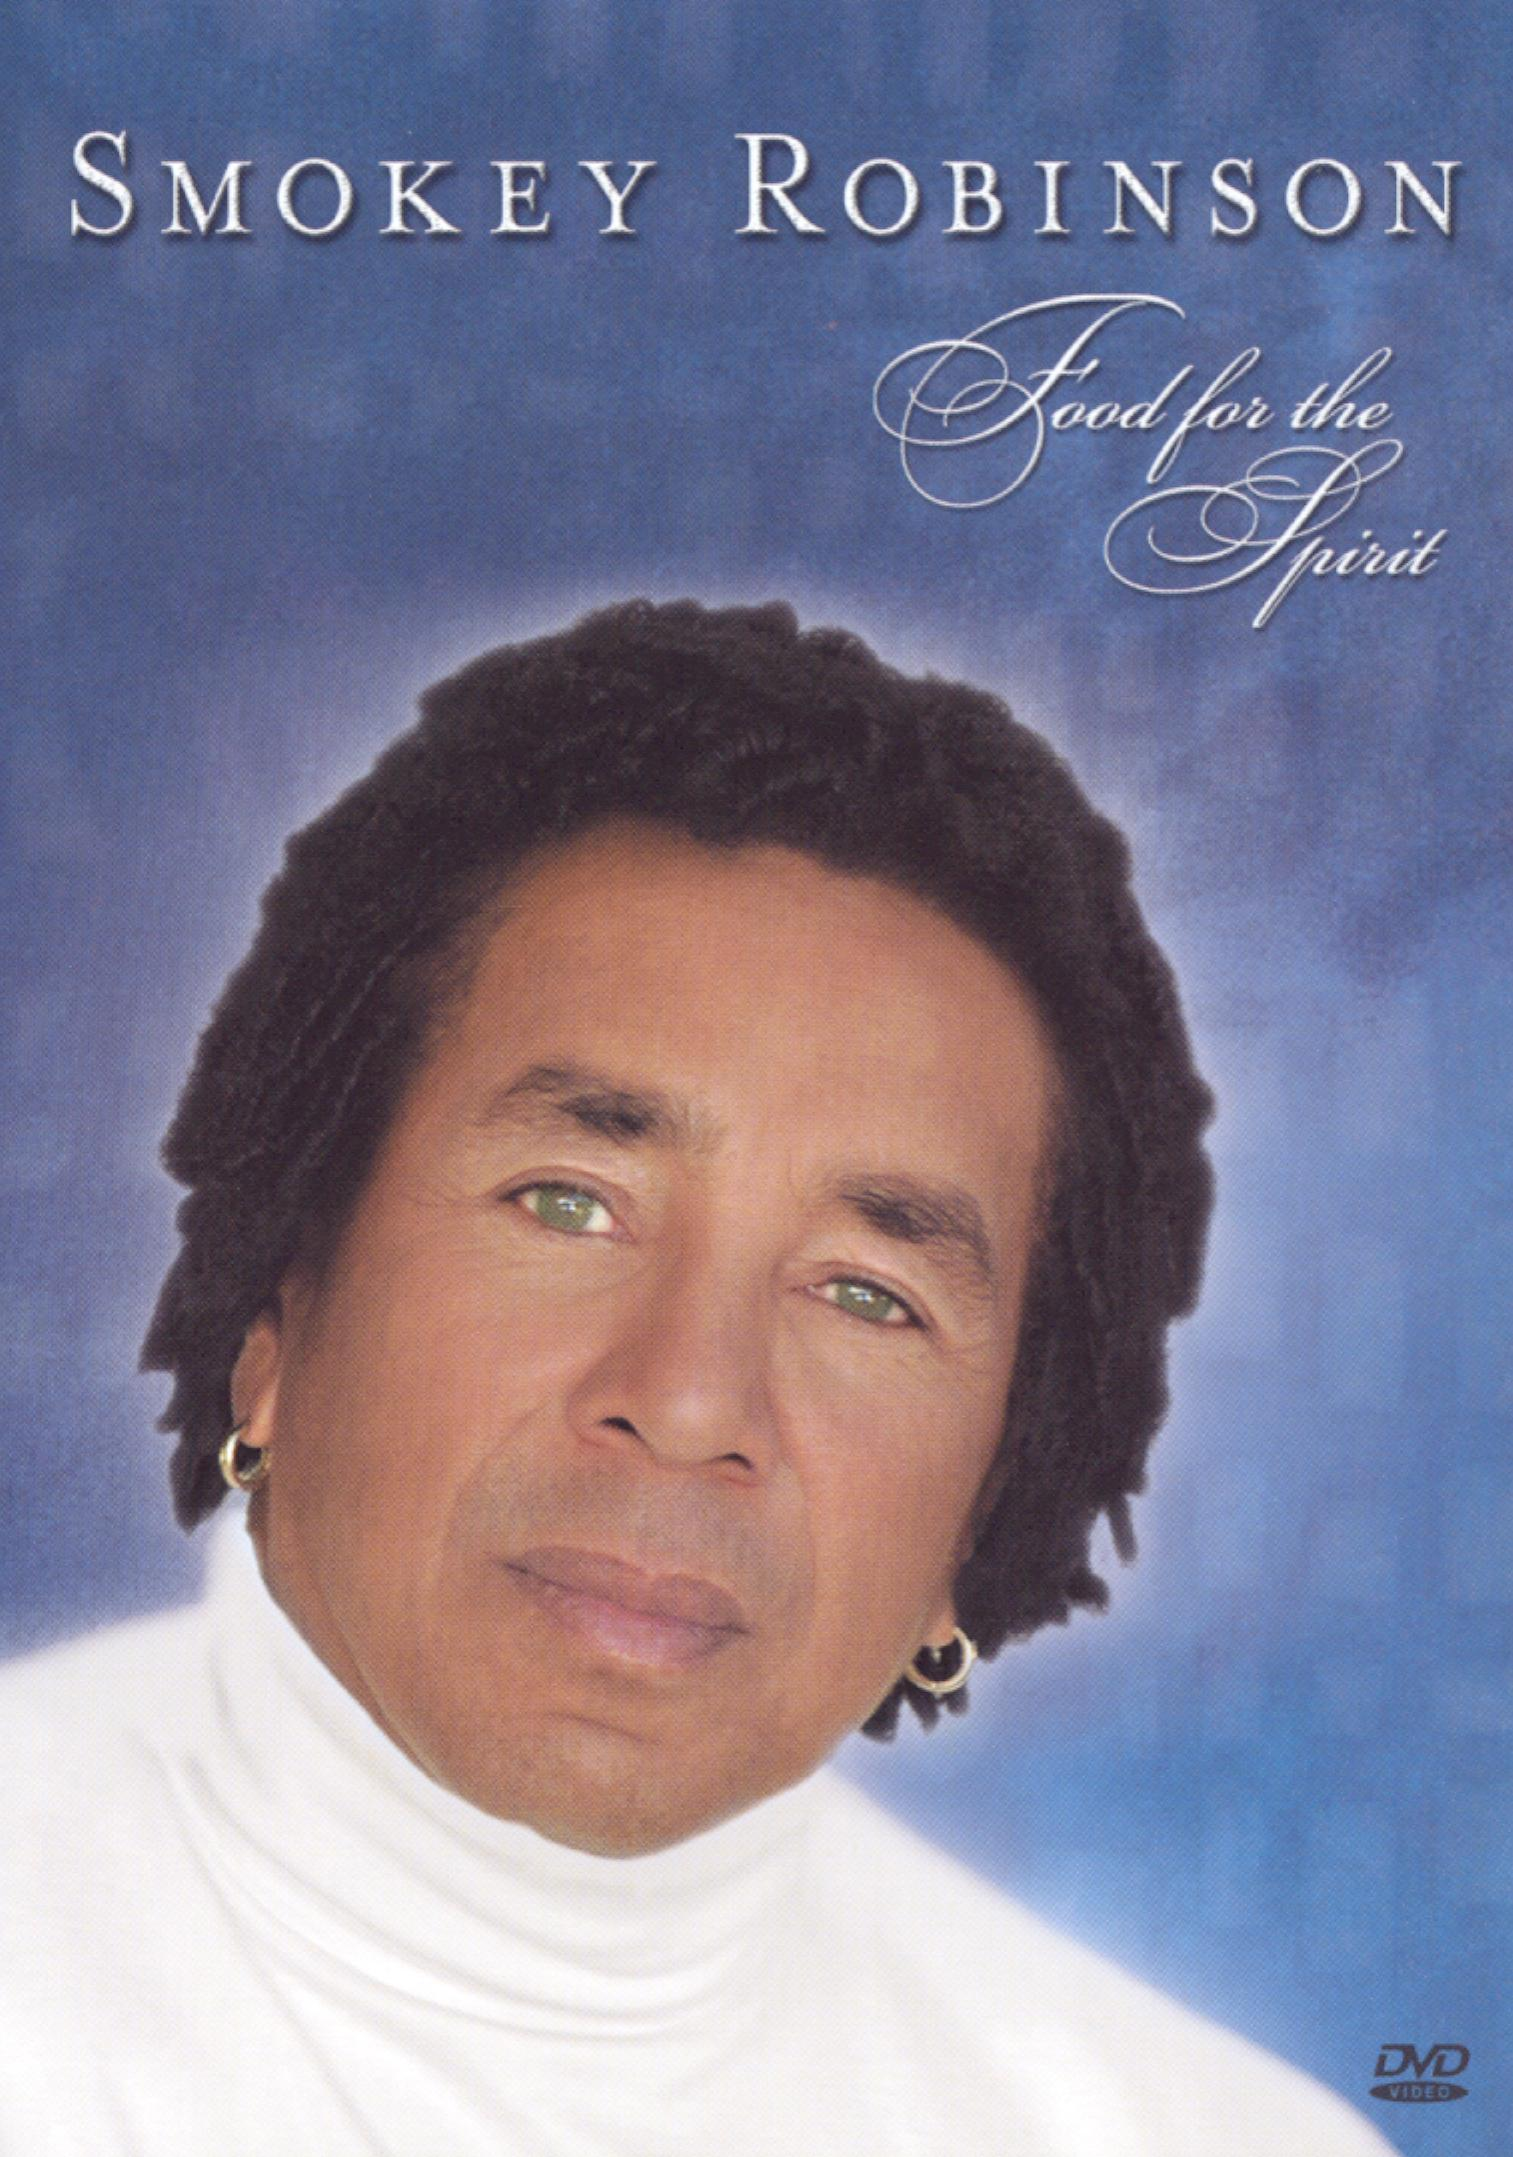 Smokey Robinson: Food For the Spirit